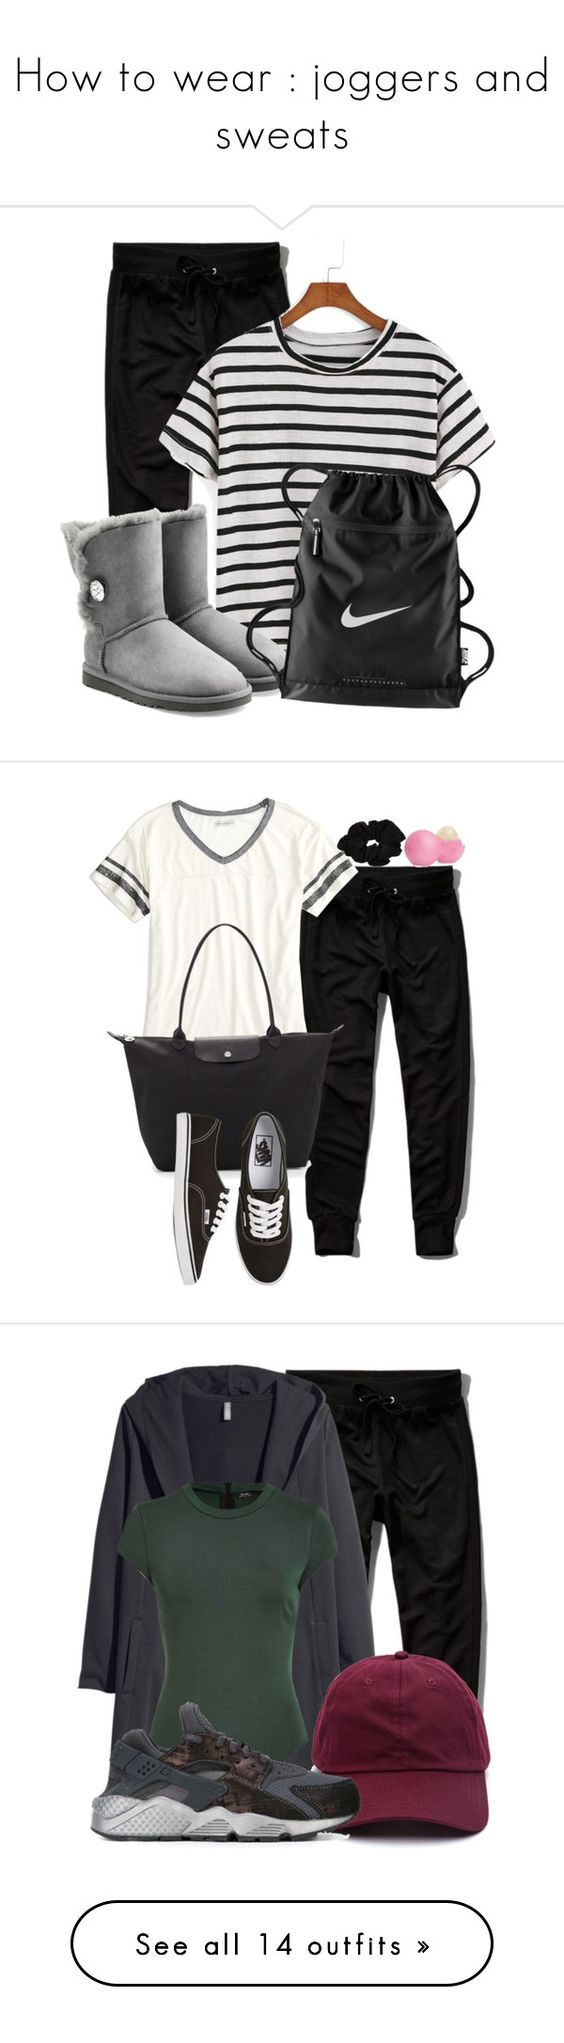 """""""How to wear : joggers and sweats"""" by maddophelia ❤ liked on Polyvore featuring Abercrombie & Fitch, UGG Australia, NIKE, women's clothing, women, female, woman, misses, juniors and American Eagle Outfitters"""